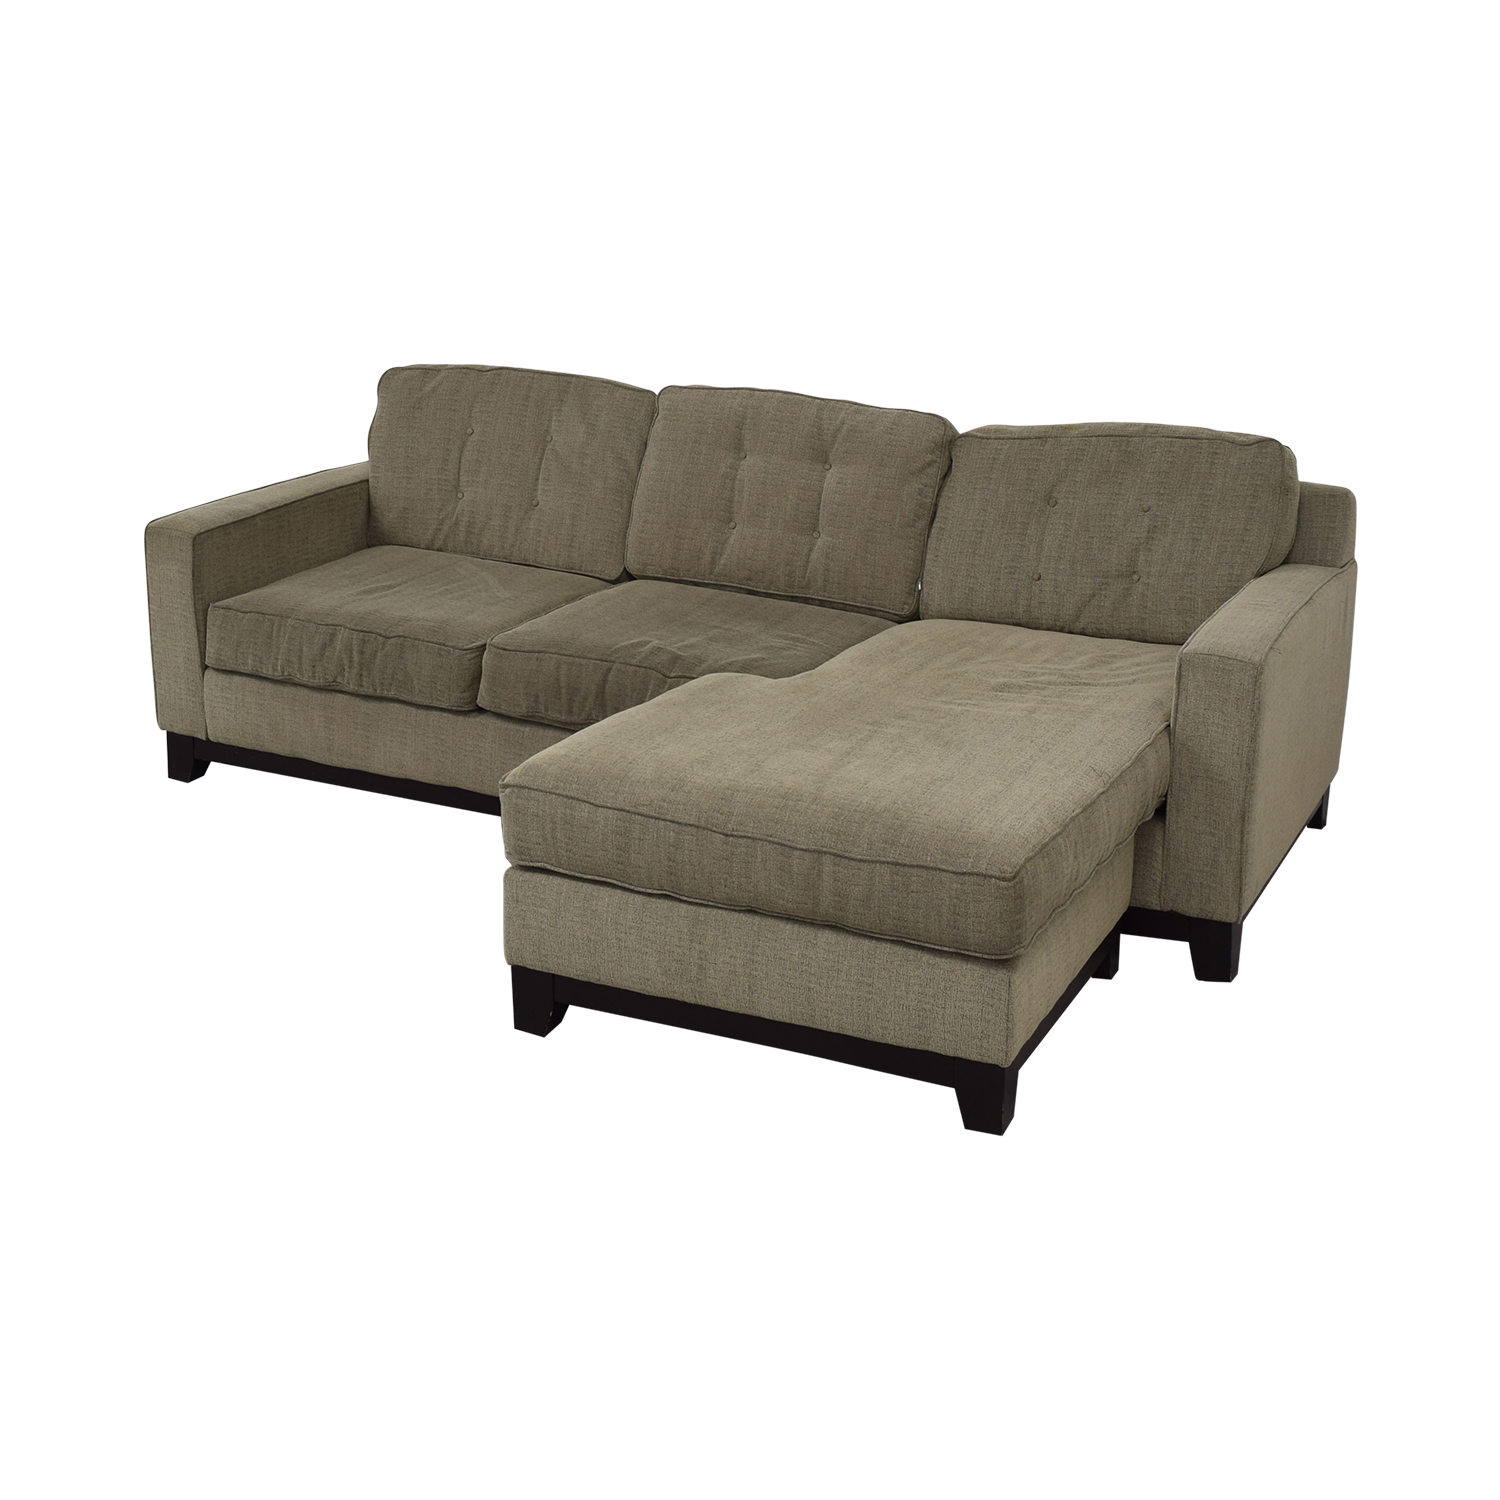 Macy's Macy's Grey Tufted Chaise Sectional nj